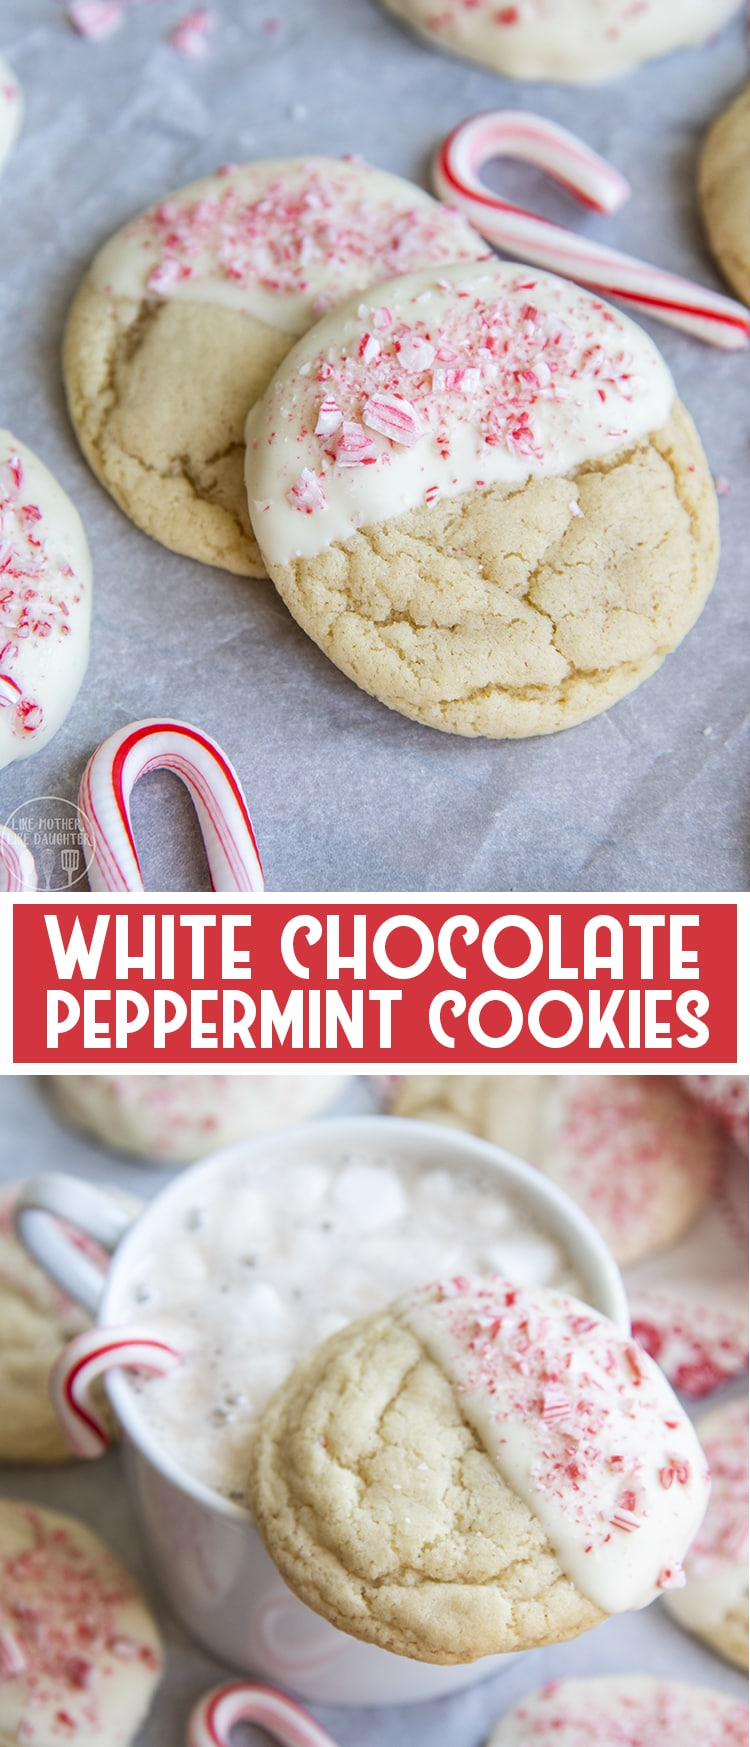 These white chocolate peppermint cookies are a soft and chewy sugar cookie dipped in white chocolate and topped with crushed peppermint candies. They're a perfect holiday cookie!